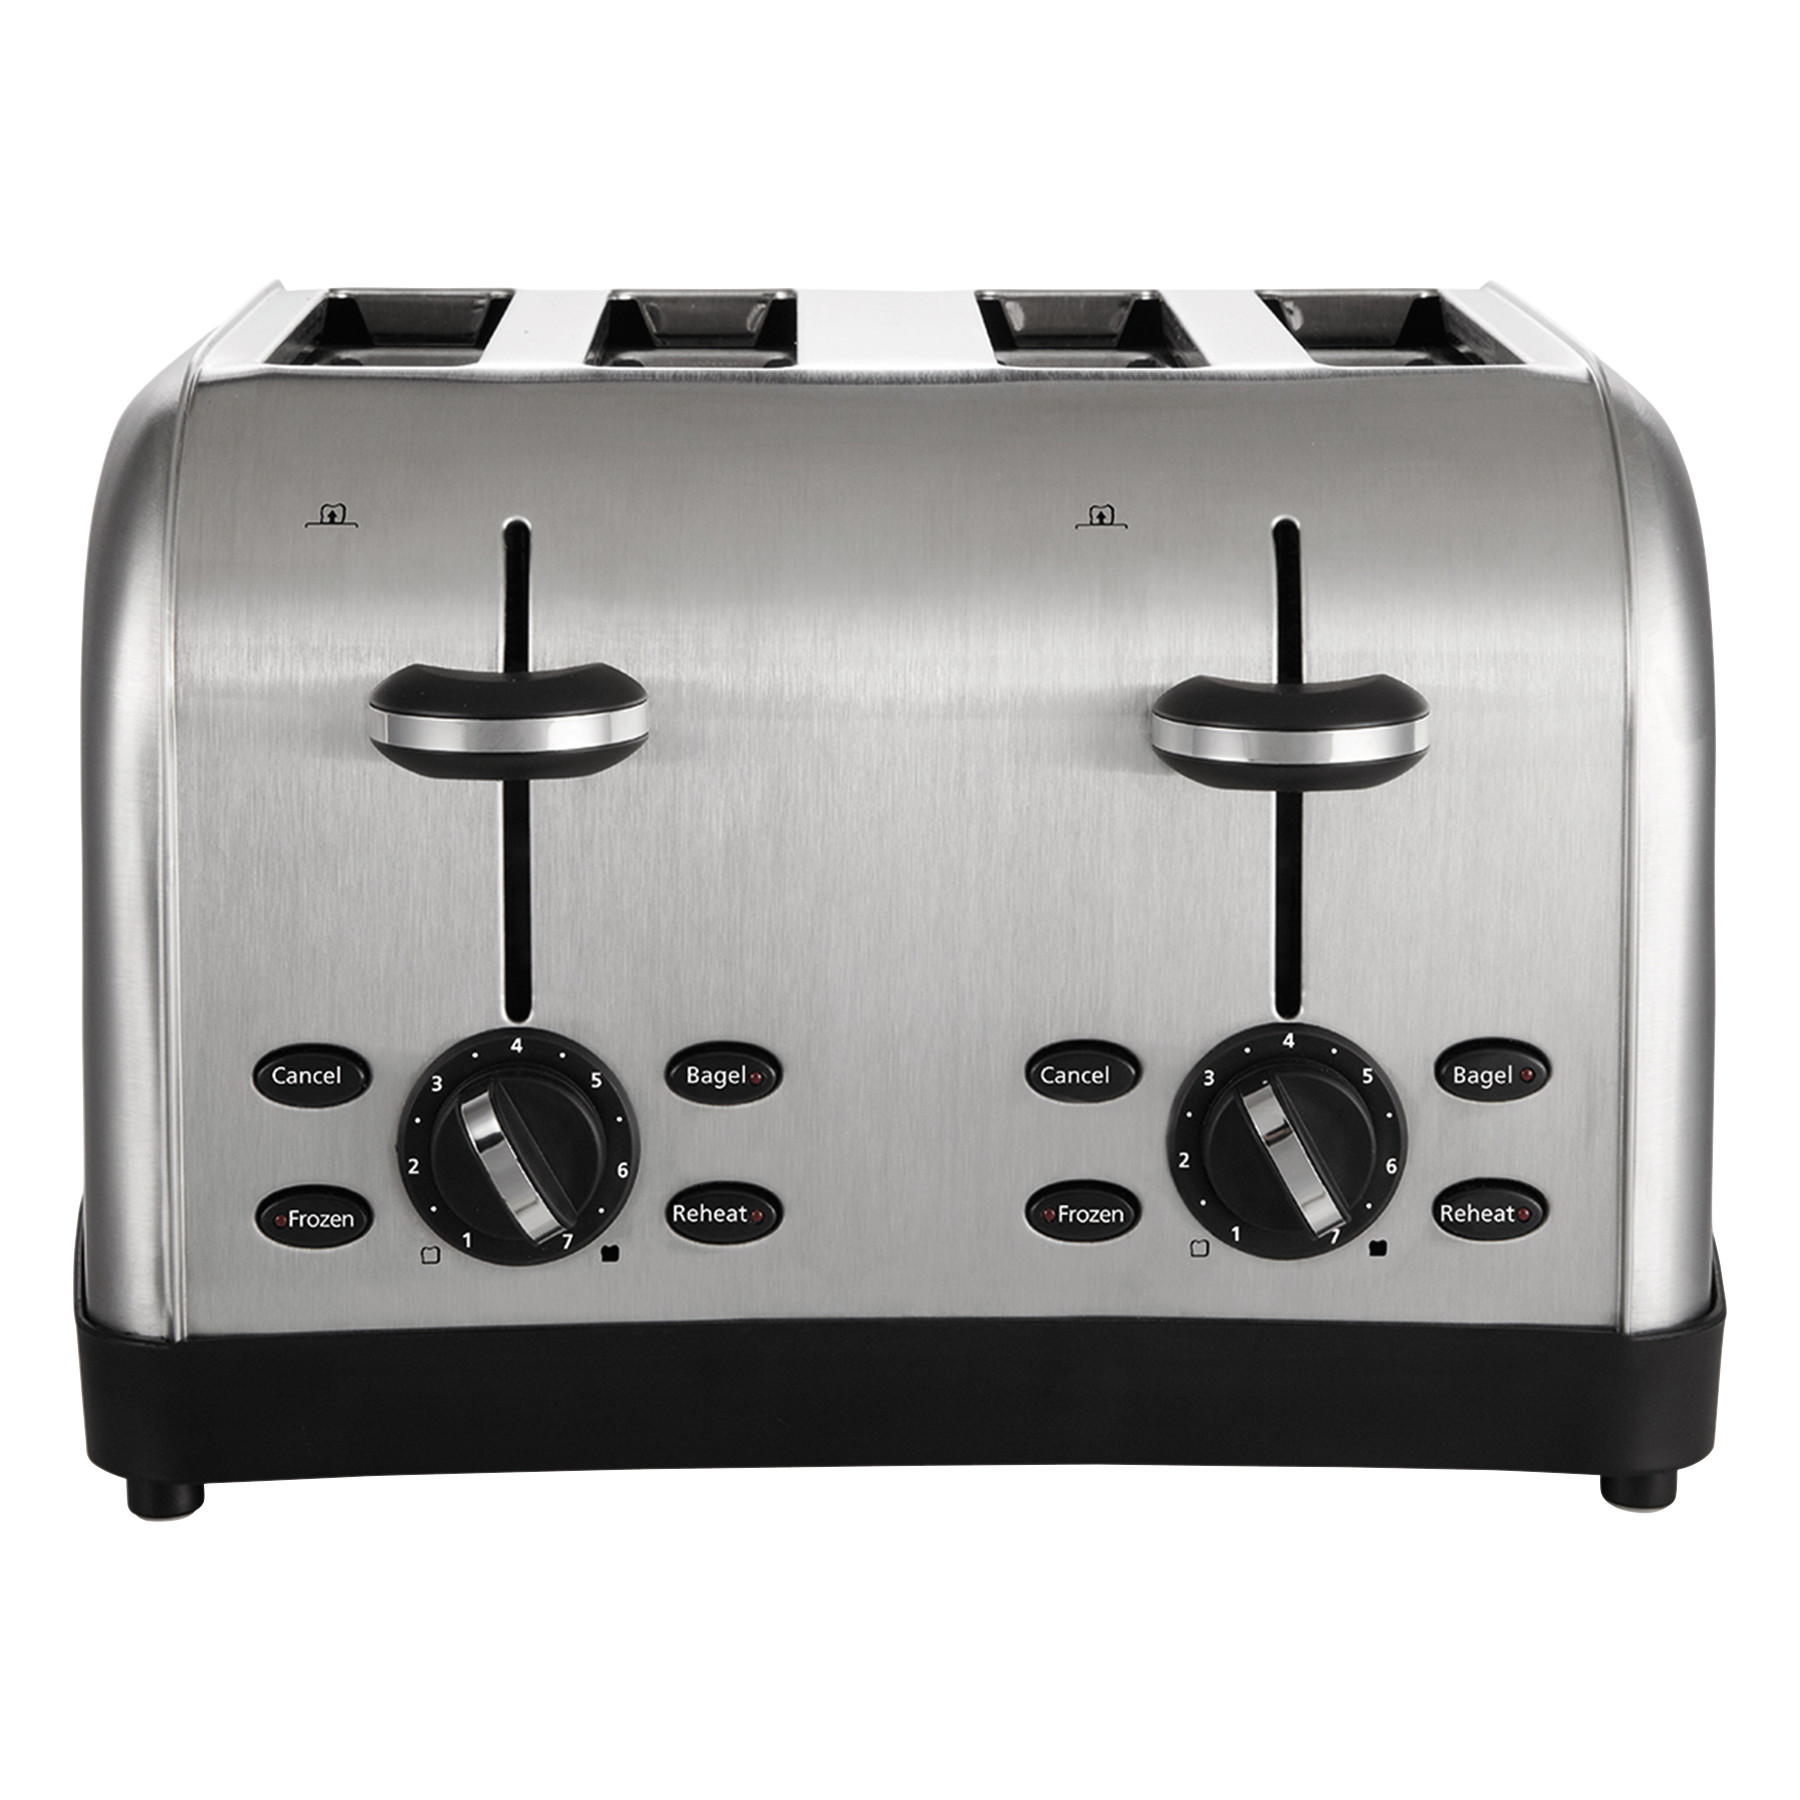 Oster Extra Wide Slot Toaster, 4-Slice, 12 3/4 x 13 x 8 1/2, Stainless Steel